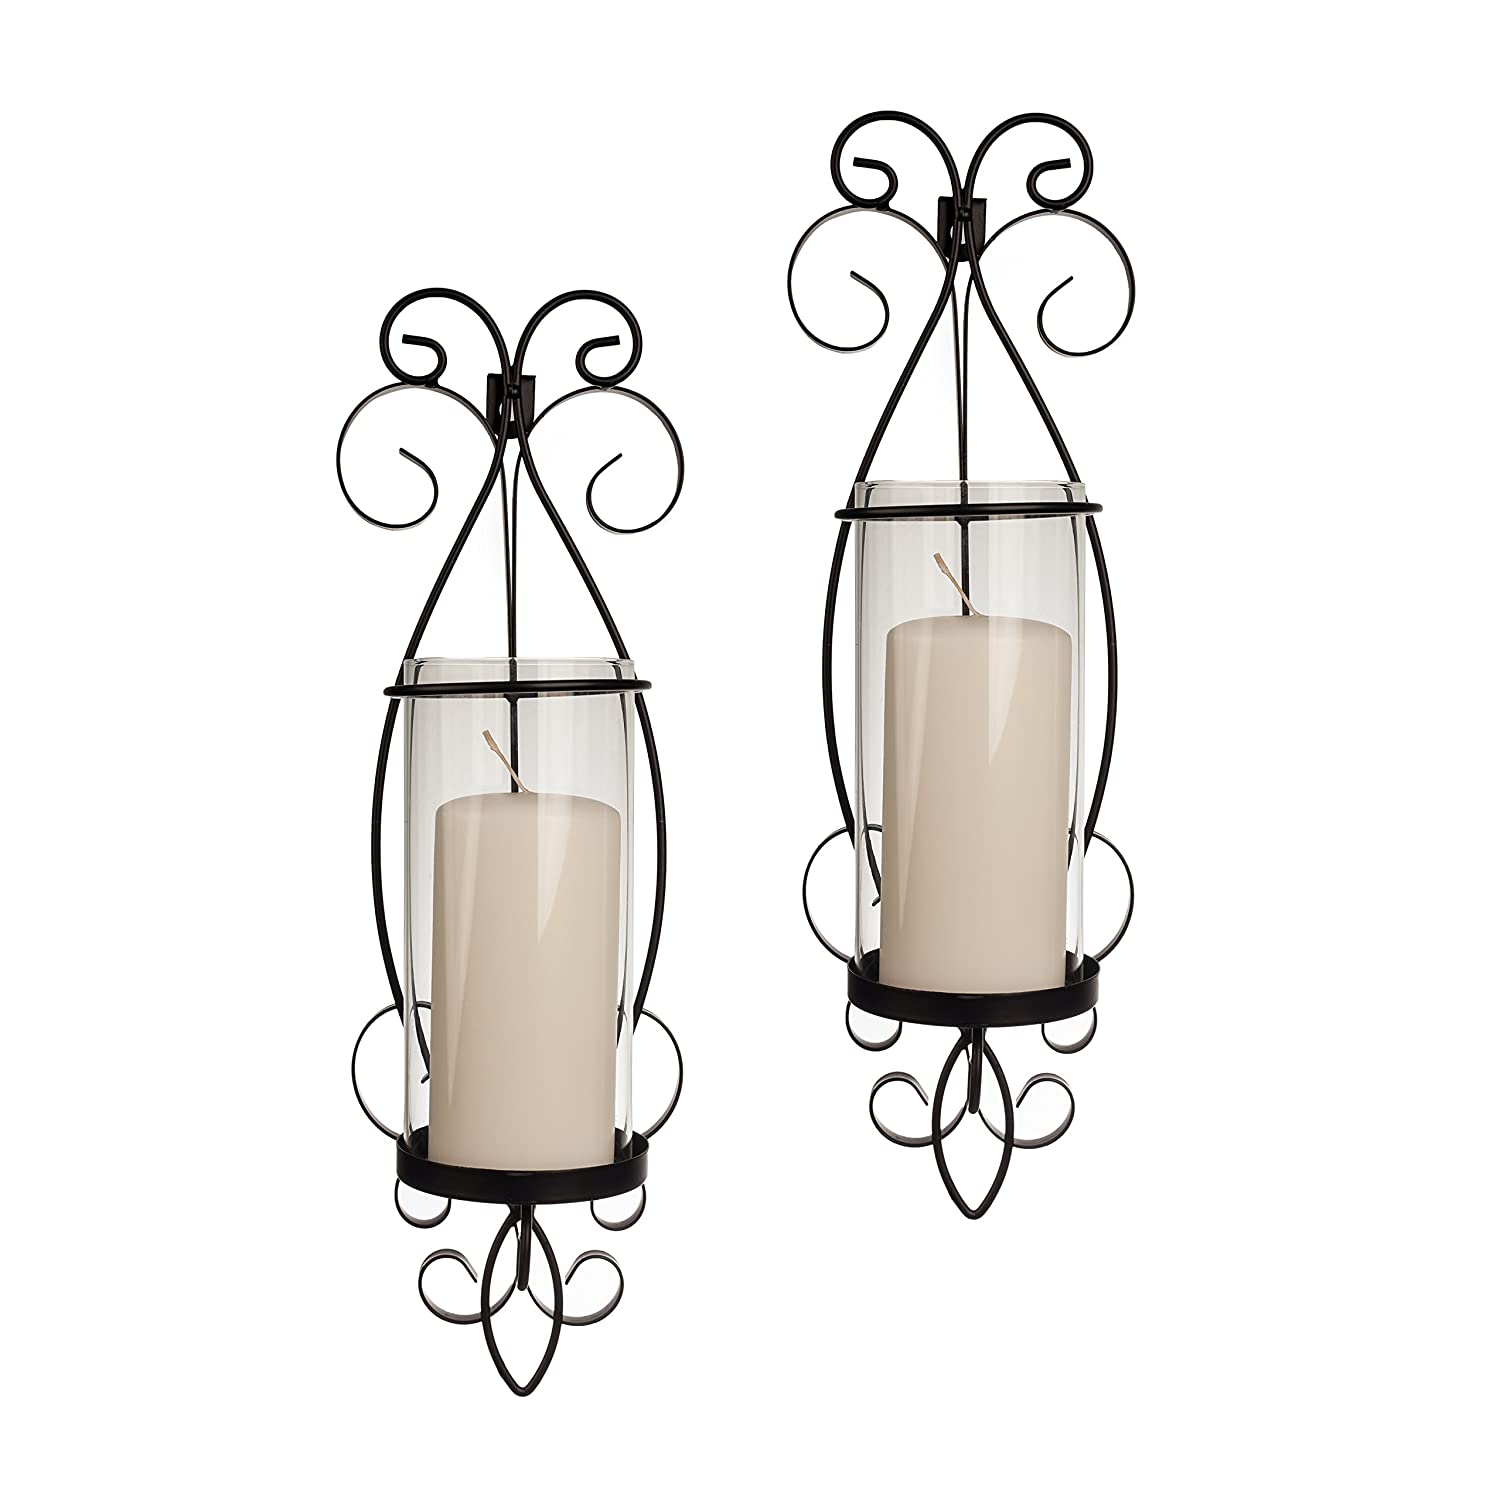 San Remo Wall Candle Sconce Set with Glass Hurricanes - Wrought Iron - Set of 2- Easy to Hang - Contemporary Home Décor by Danya B. KF632